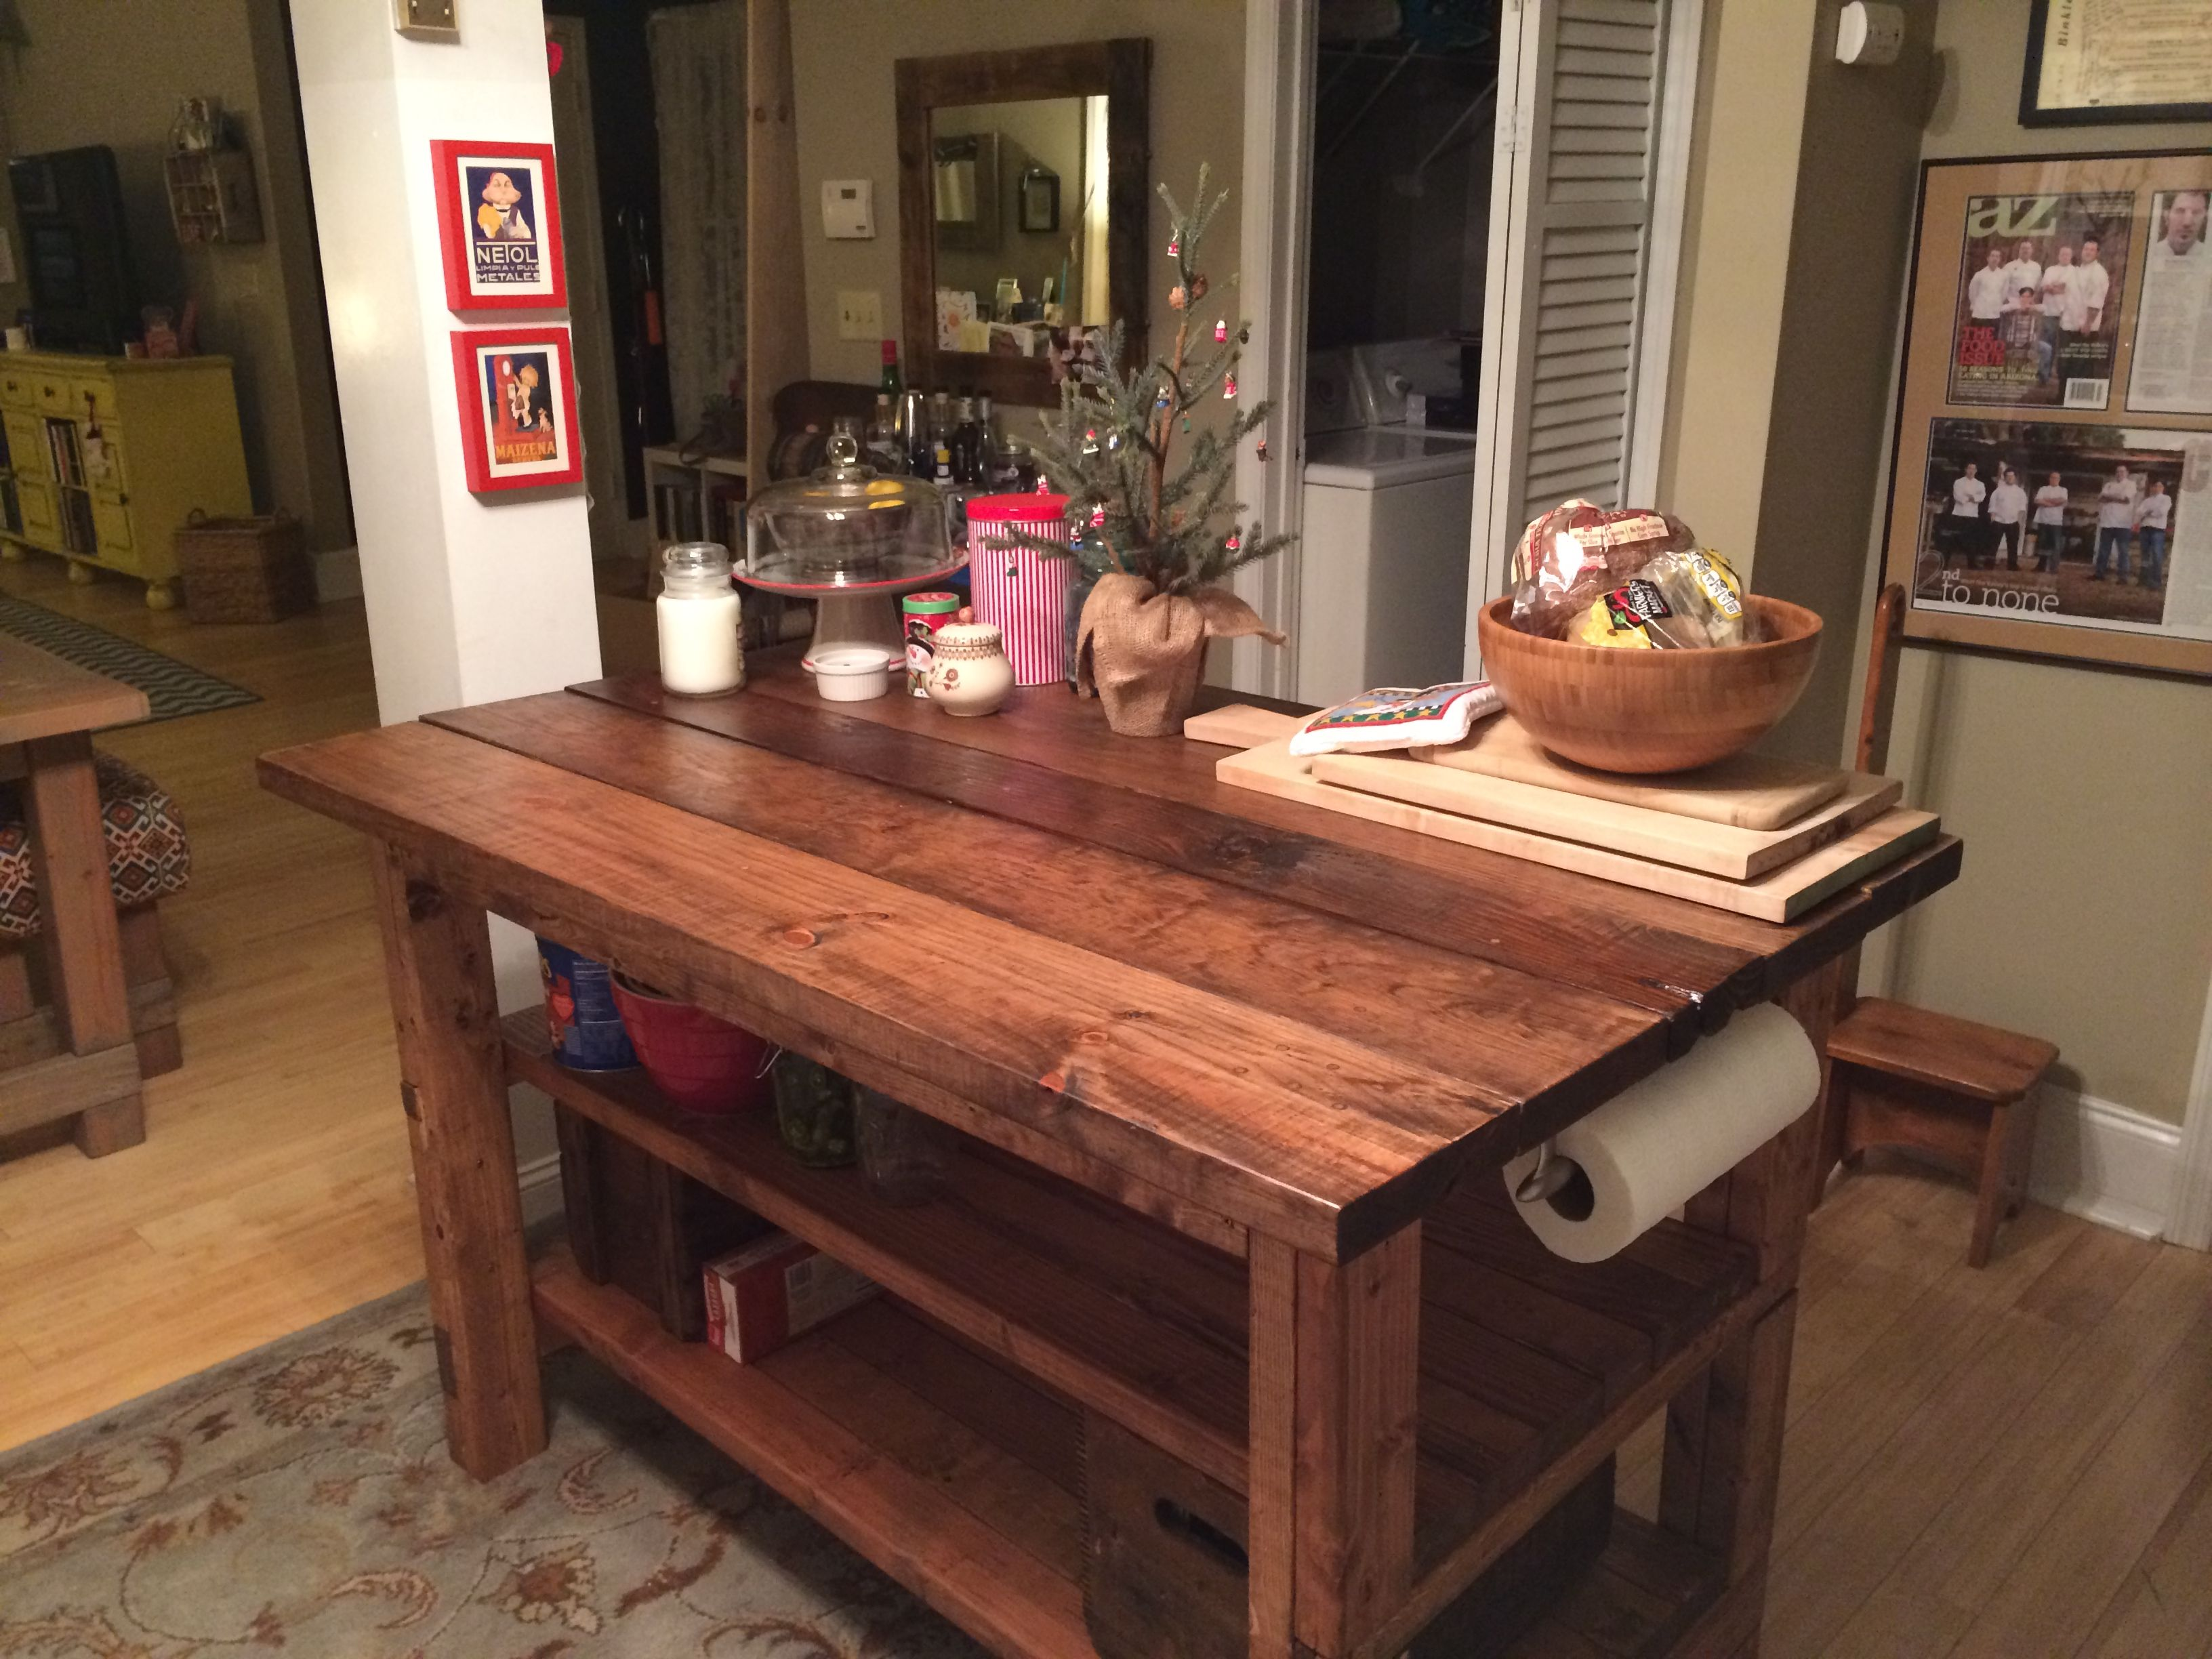 rustic diy dresser kitchen island idea | Hand-Built Rustic Kitchen Island || House. Food. Baby ...